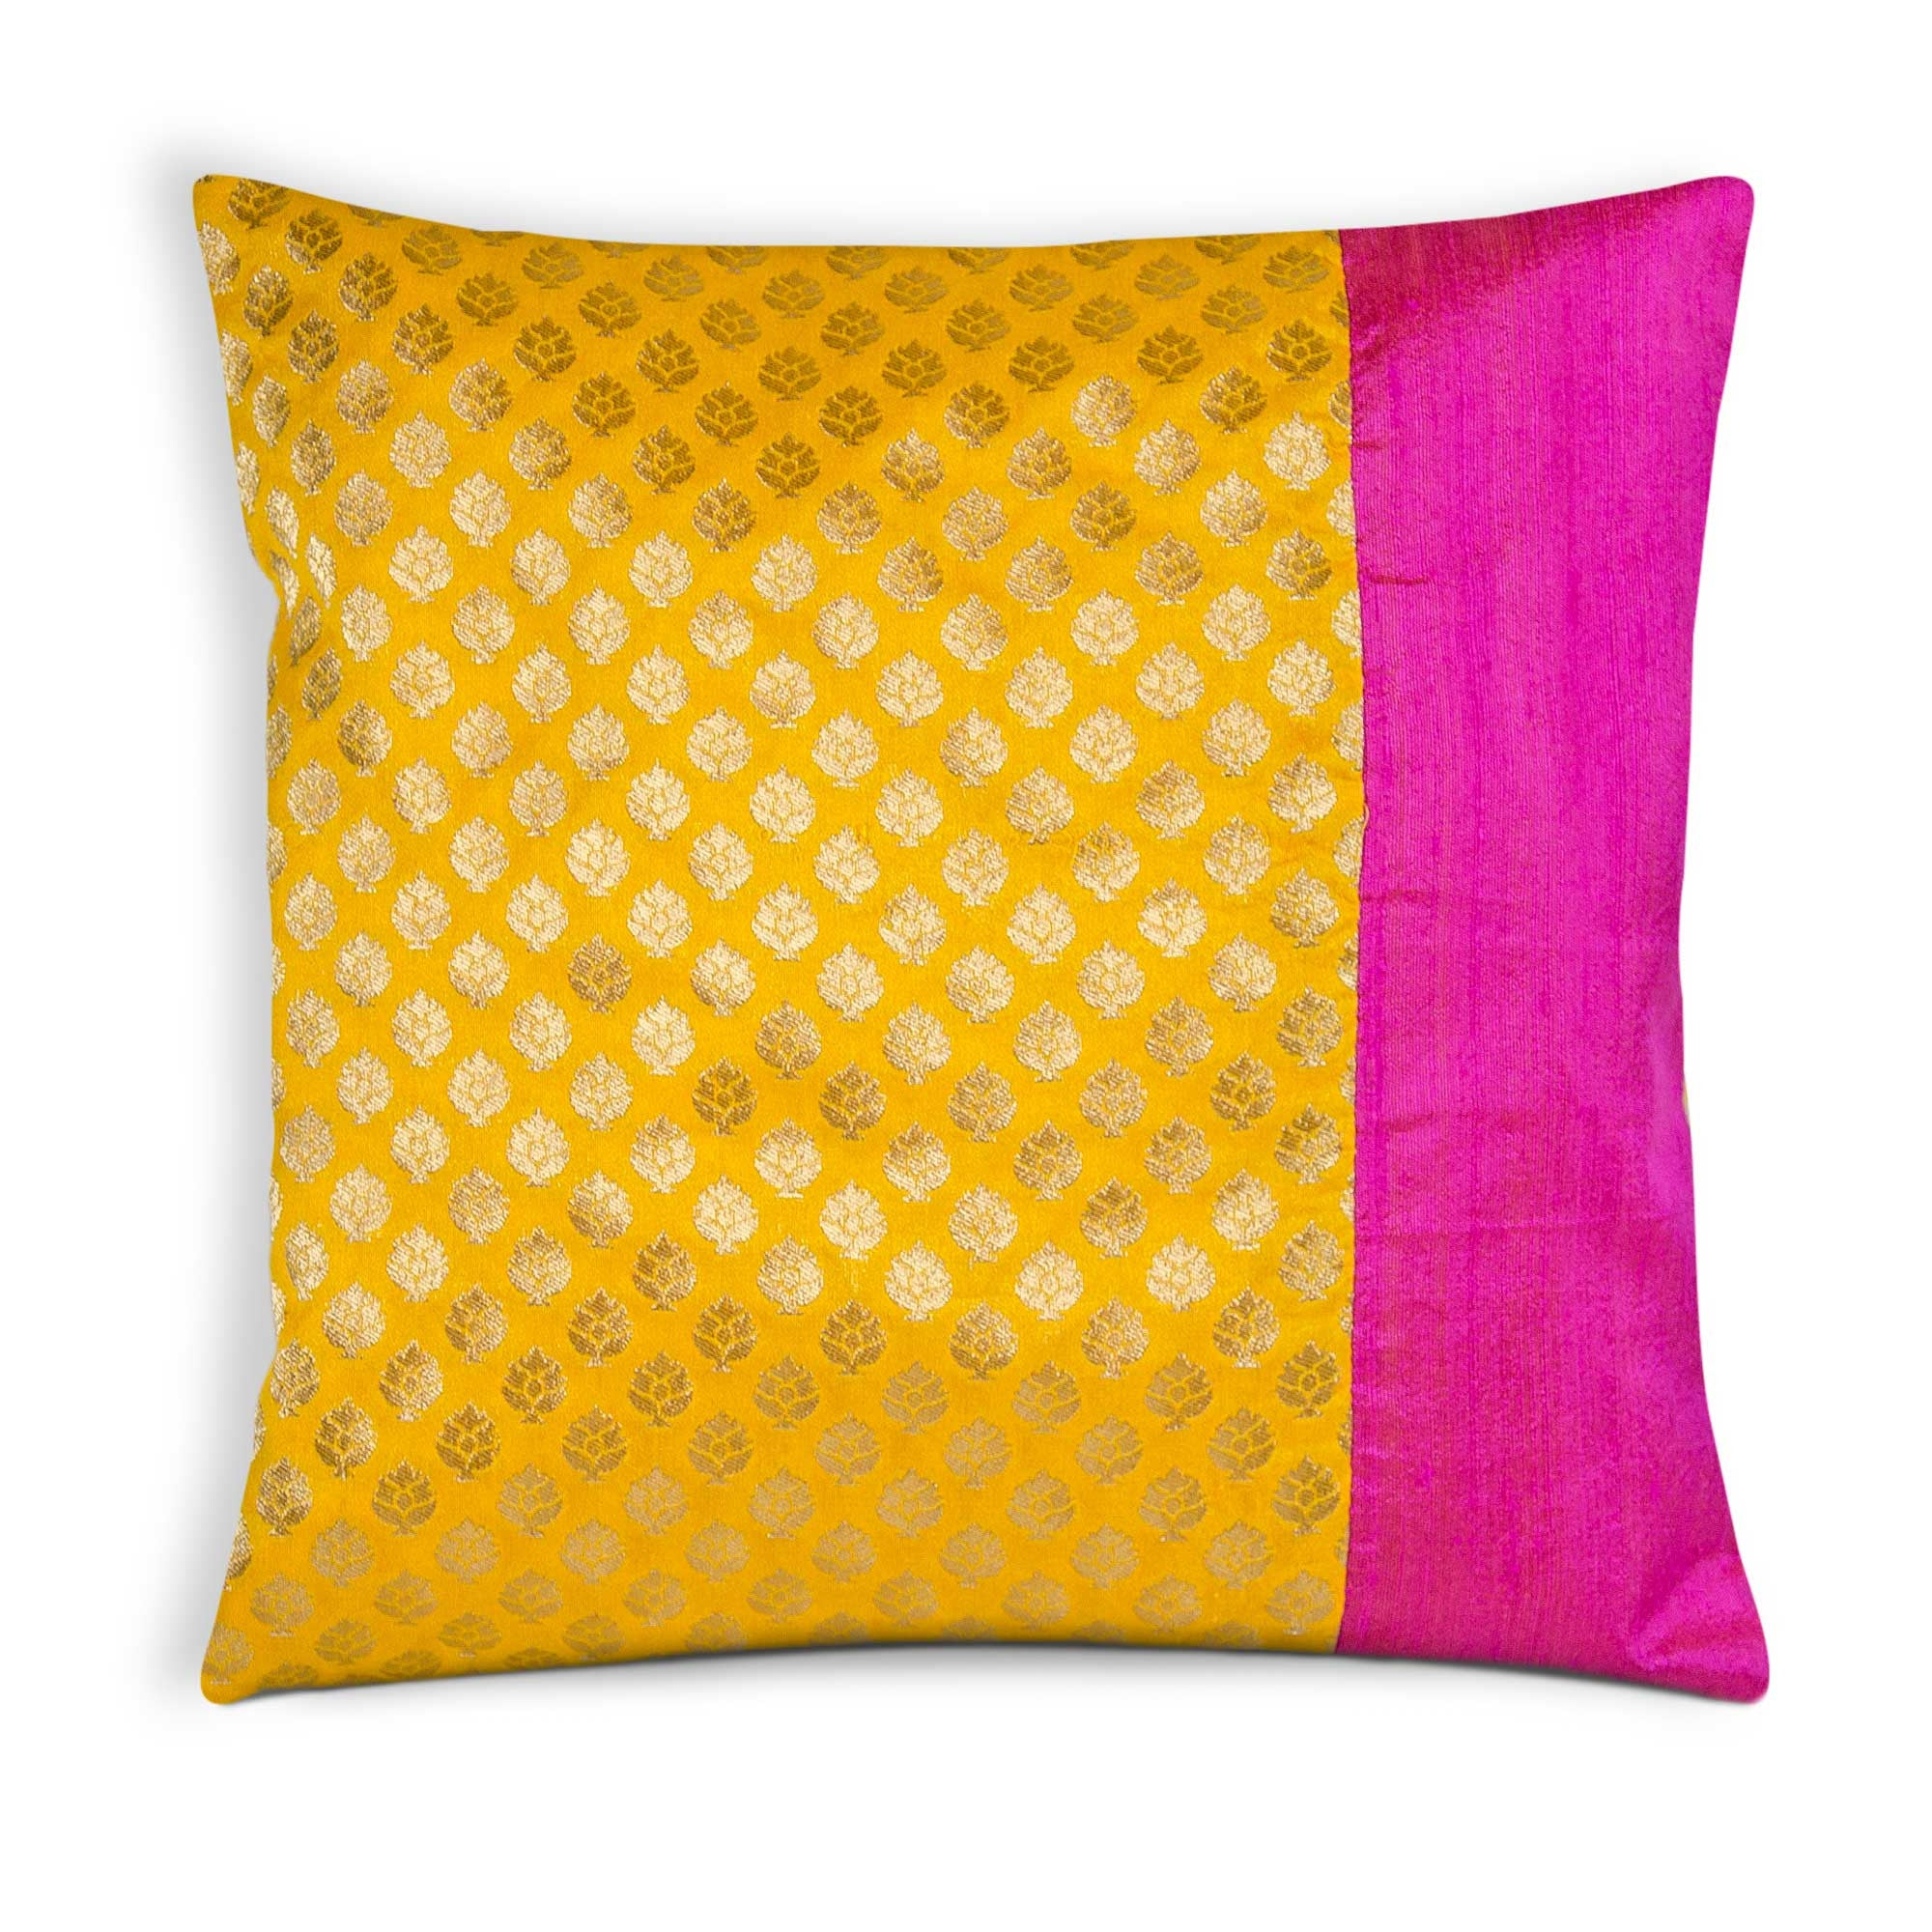 Hot Pink and Sunny Yellow Brocade Silk Pillow Cover – DesiCrafts